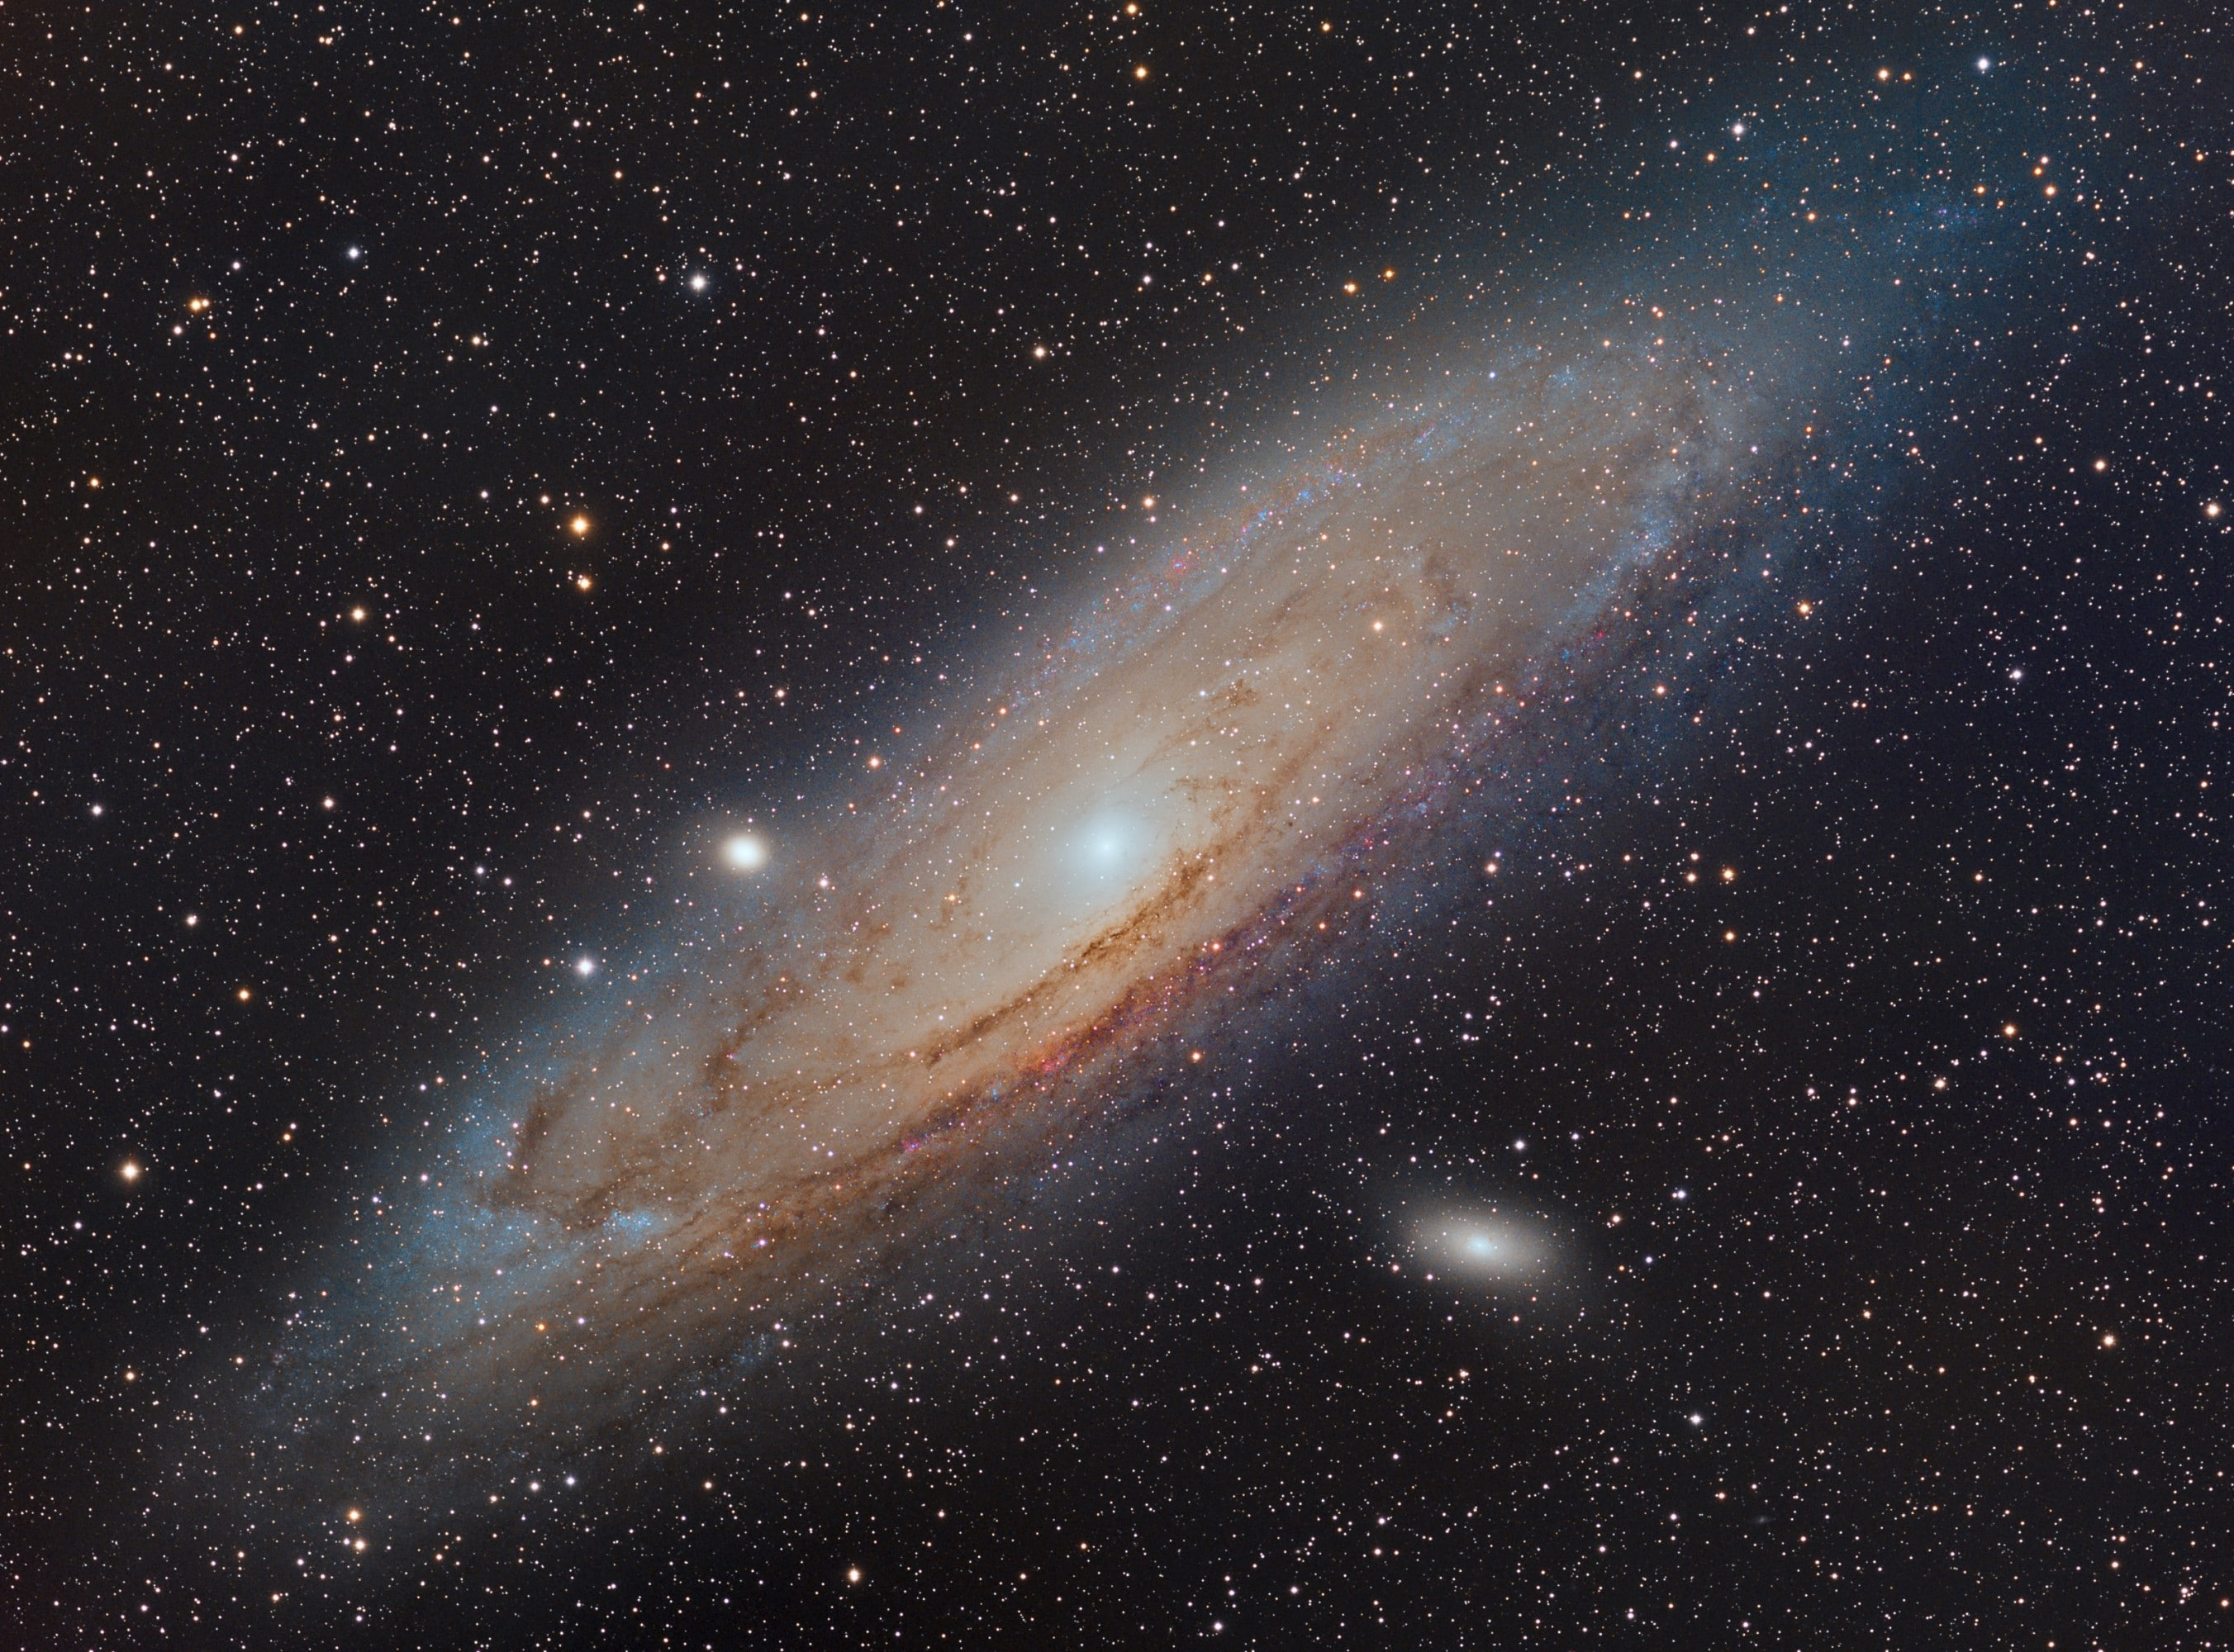 m31 andromeda galaxy with Esprit 100 and Moravian G3-16200EC -sLRGB